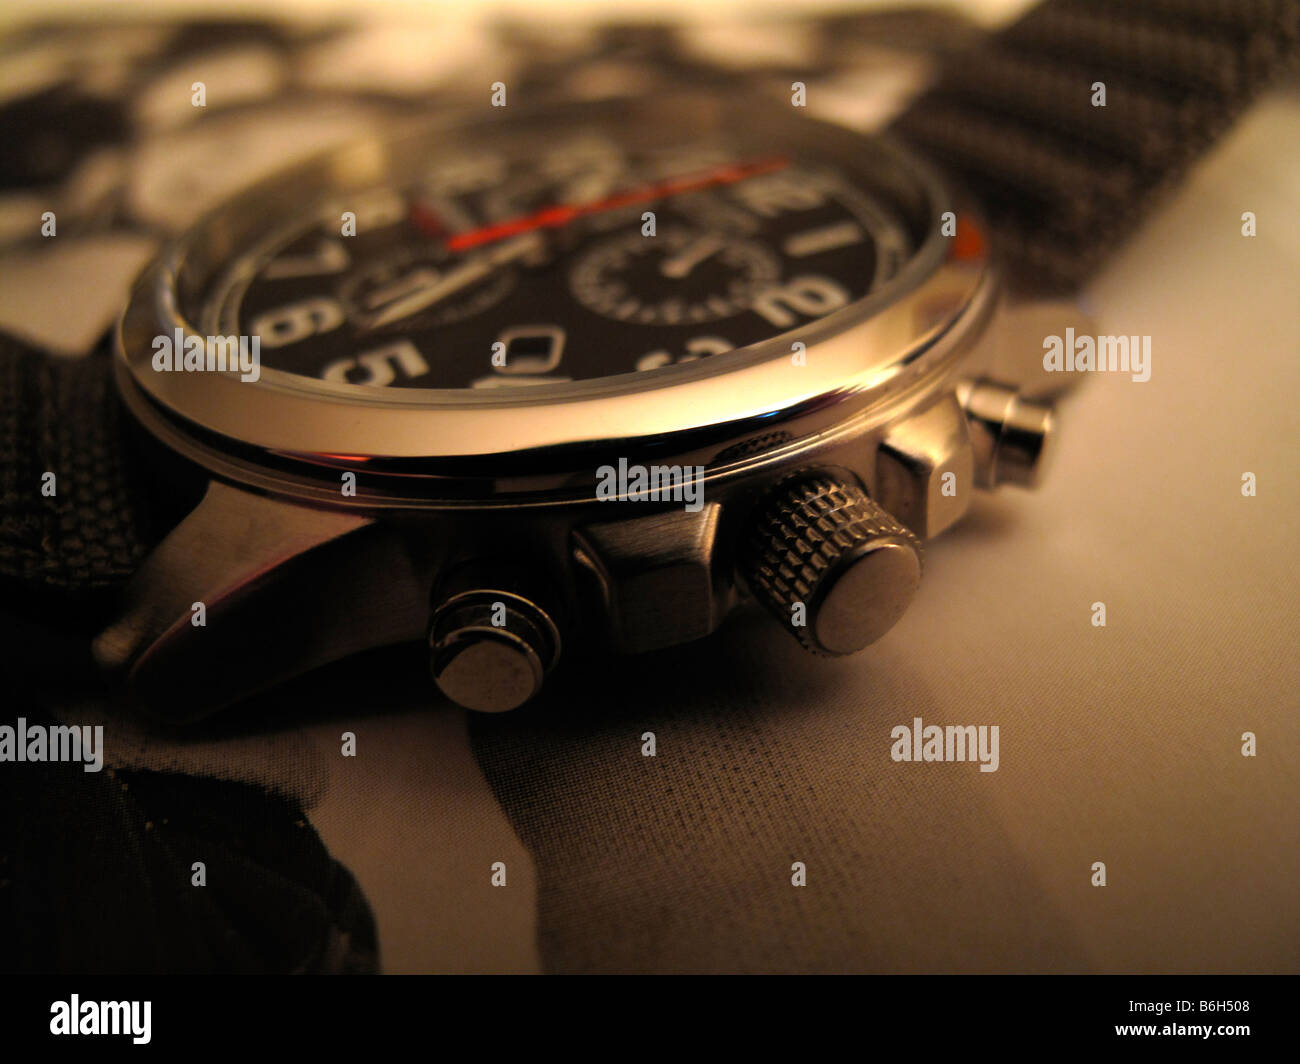 Close up of man's chronograph watch. - Stock Image